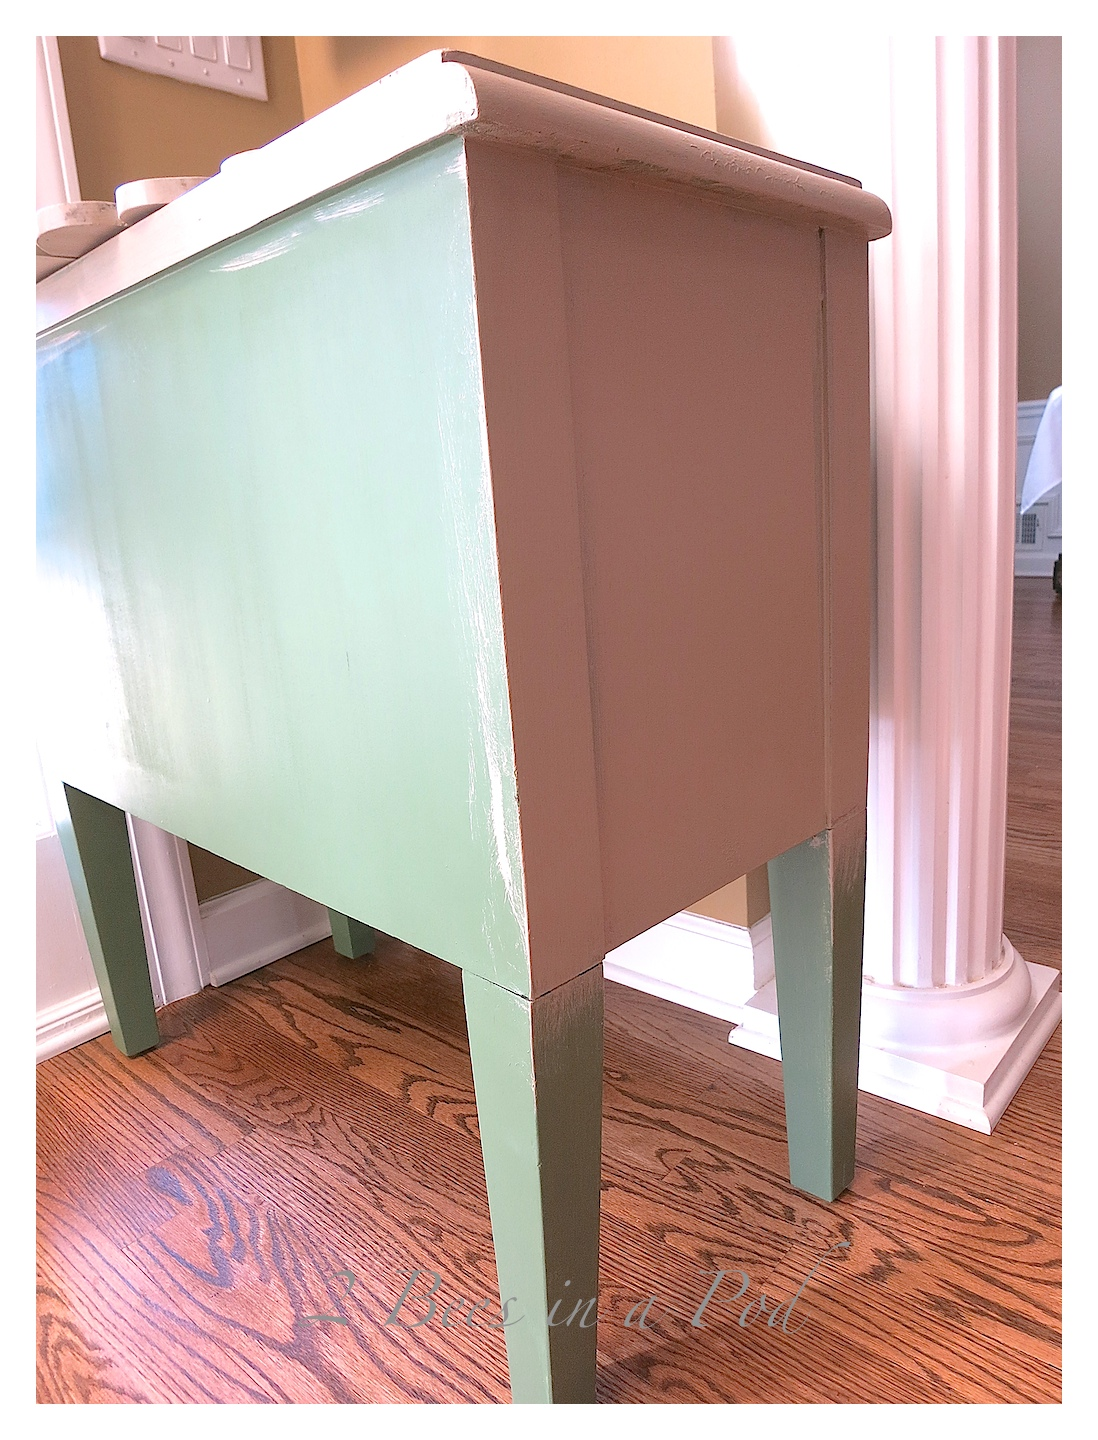 Side table makeover with Annie Sloan Chalk Paint - inside painted in Napoleonic Blue Annie Sloan Chalk Paint. Outside of table painted in Annie Sloan Chalk Paint Old White